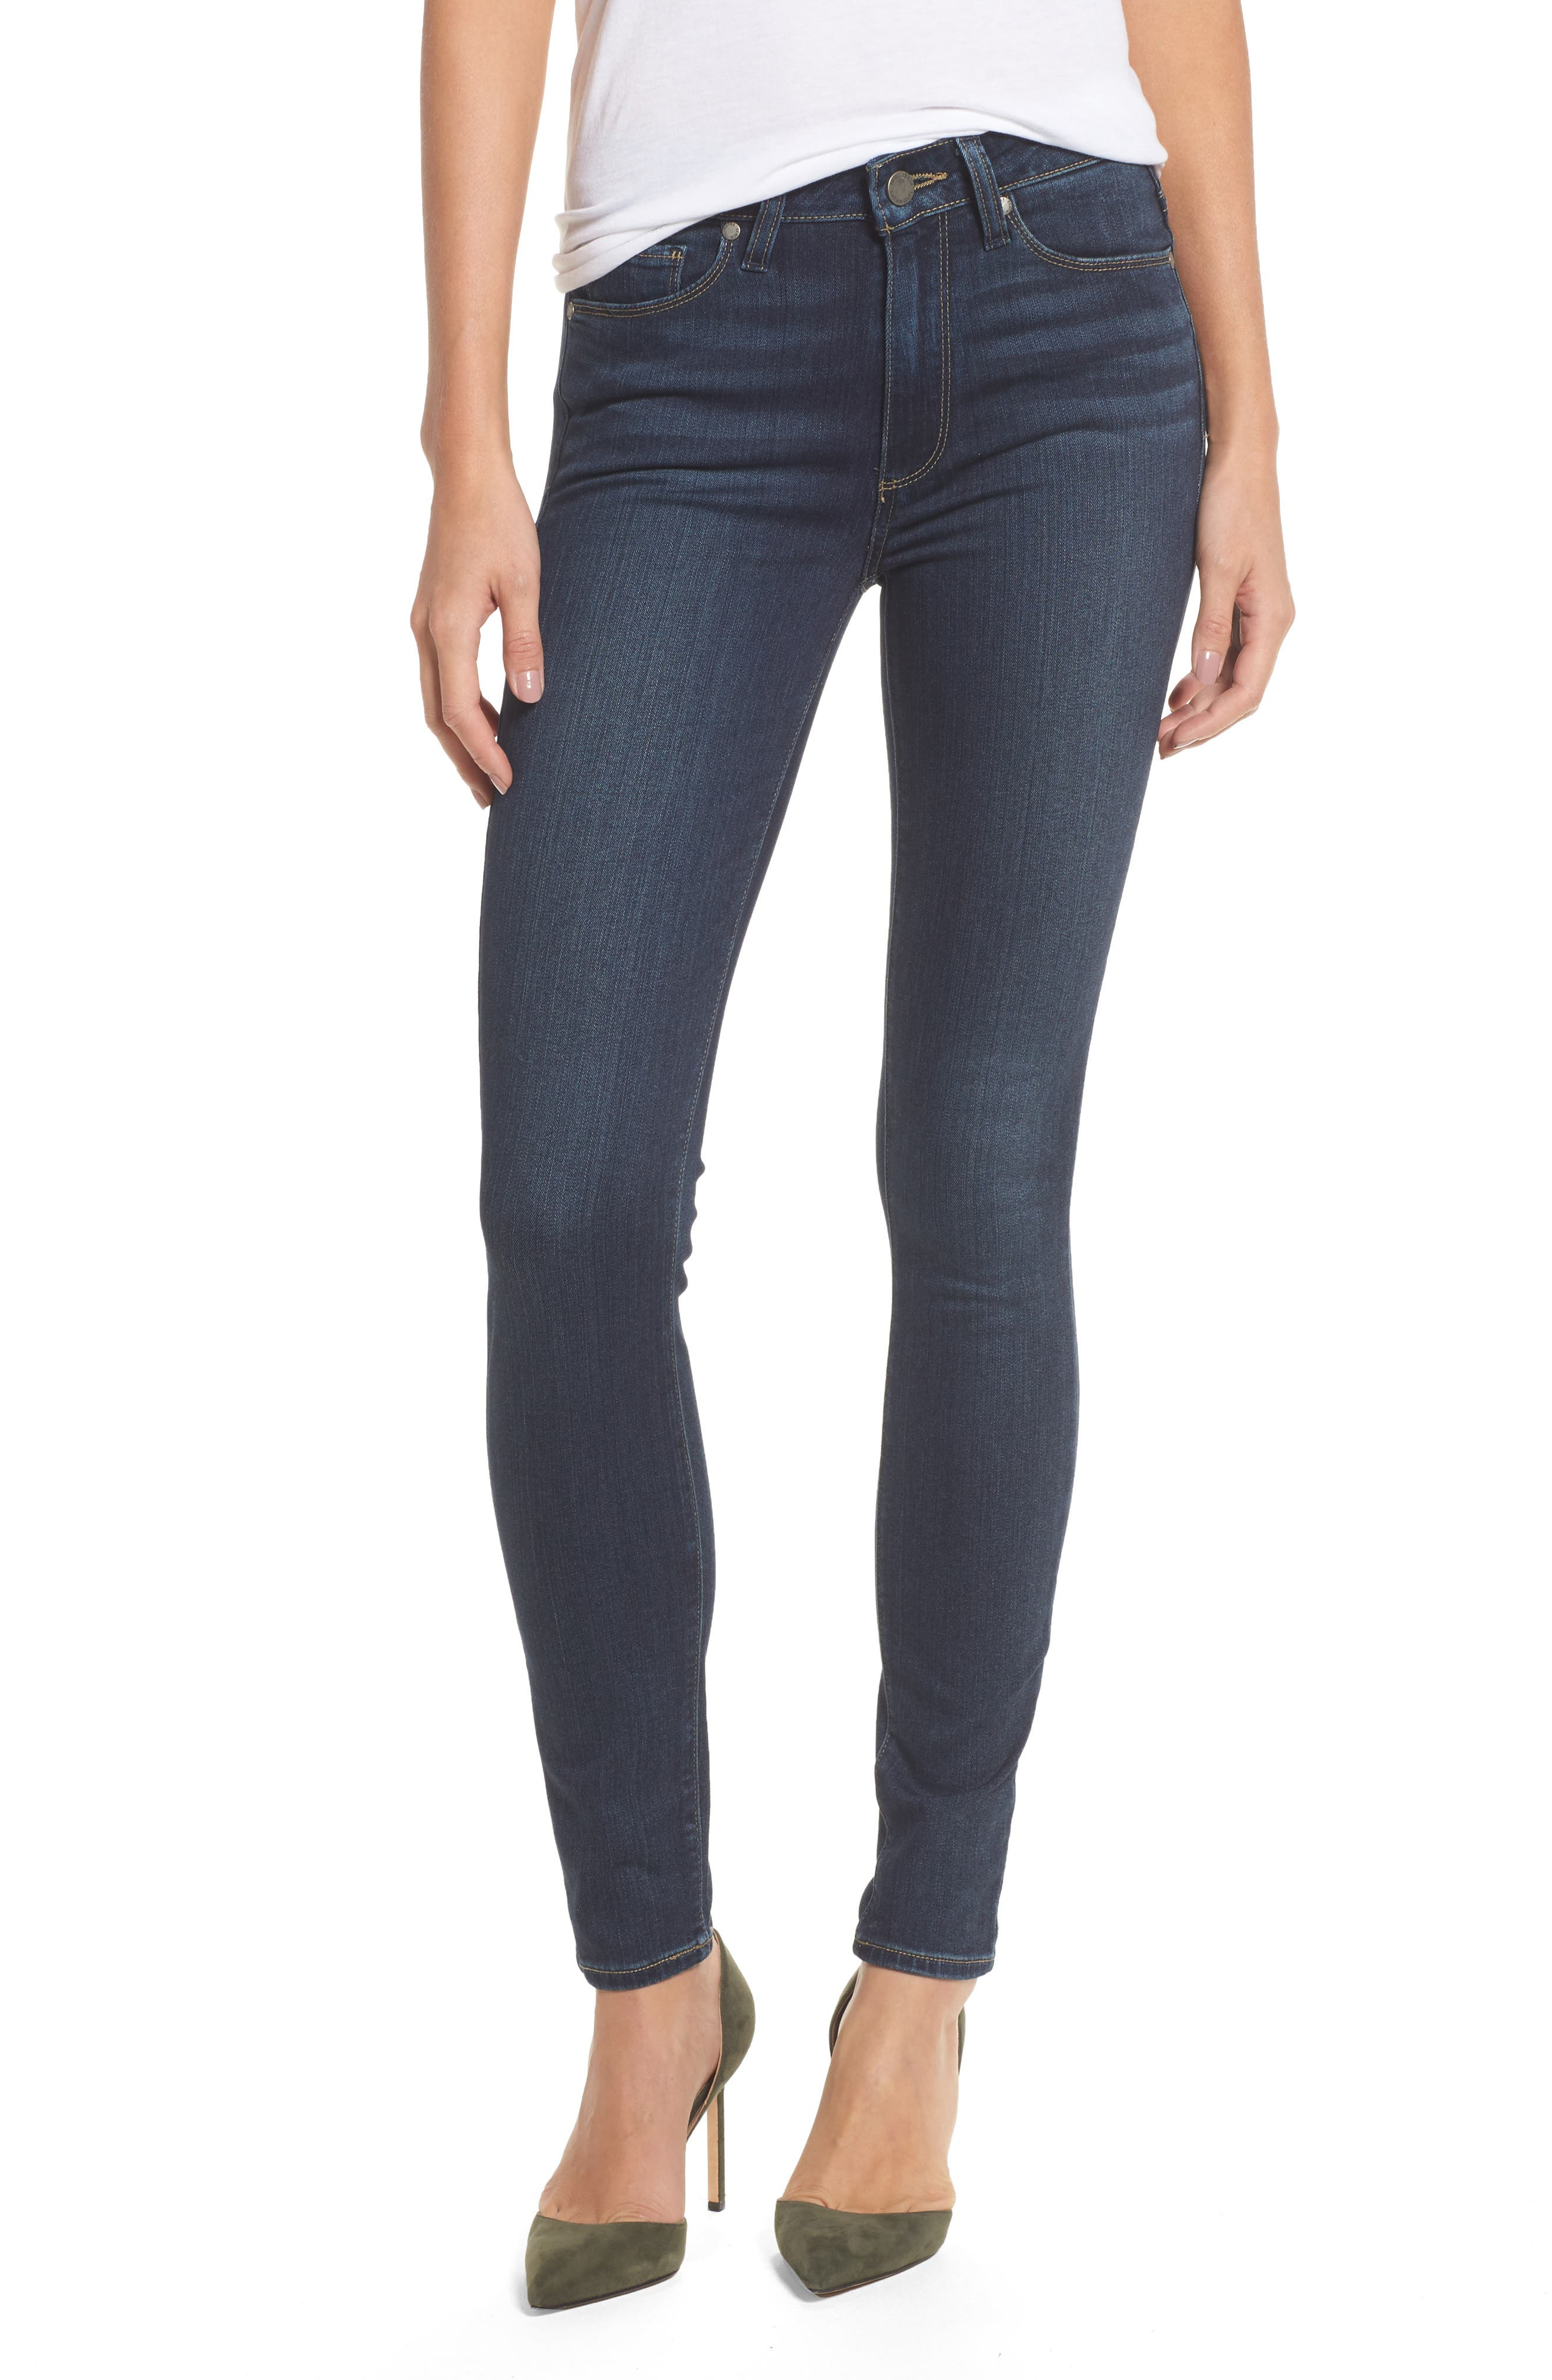 PAIGE Transcend - Hoxton High Waist Ultra Skinny Jeans (Nottingham)